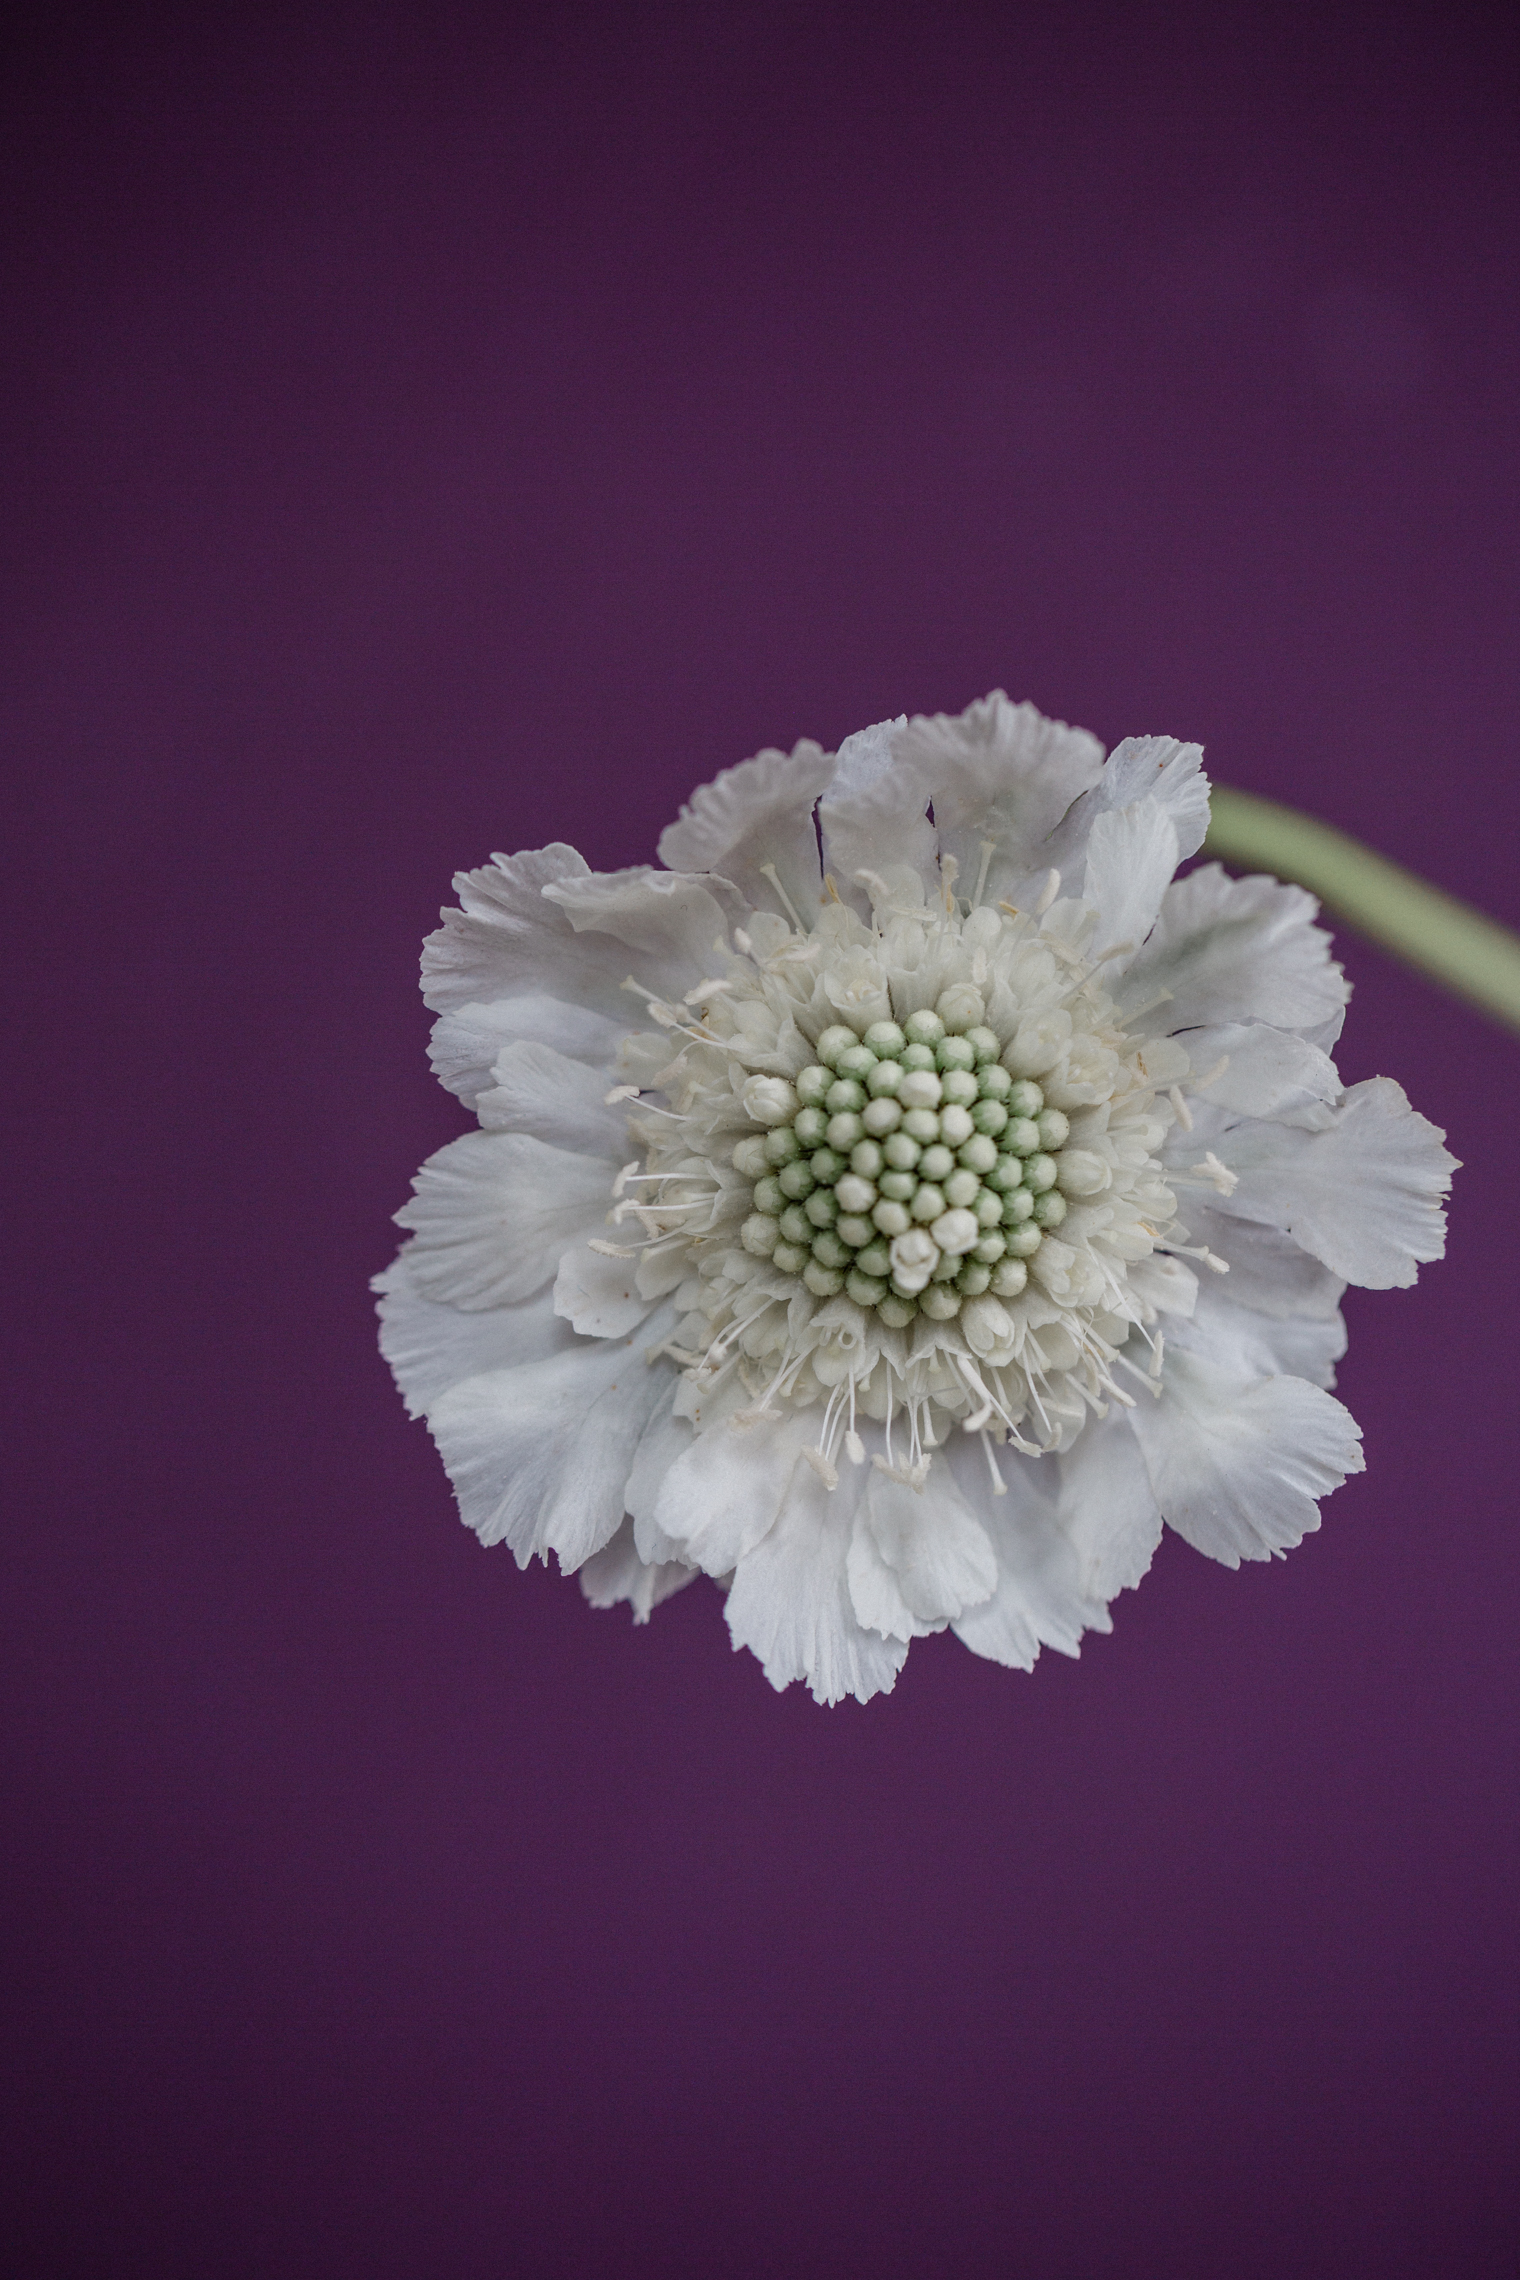 White Scabious Flower